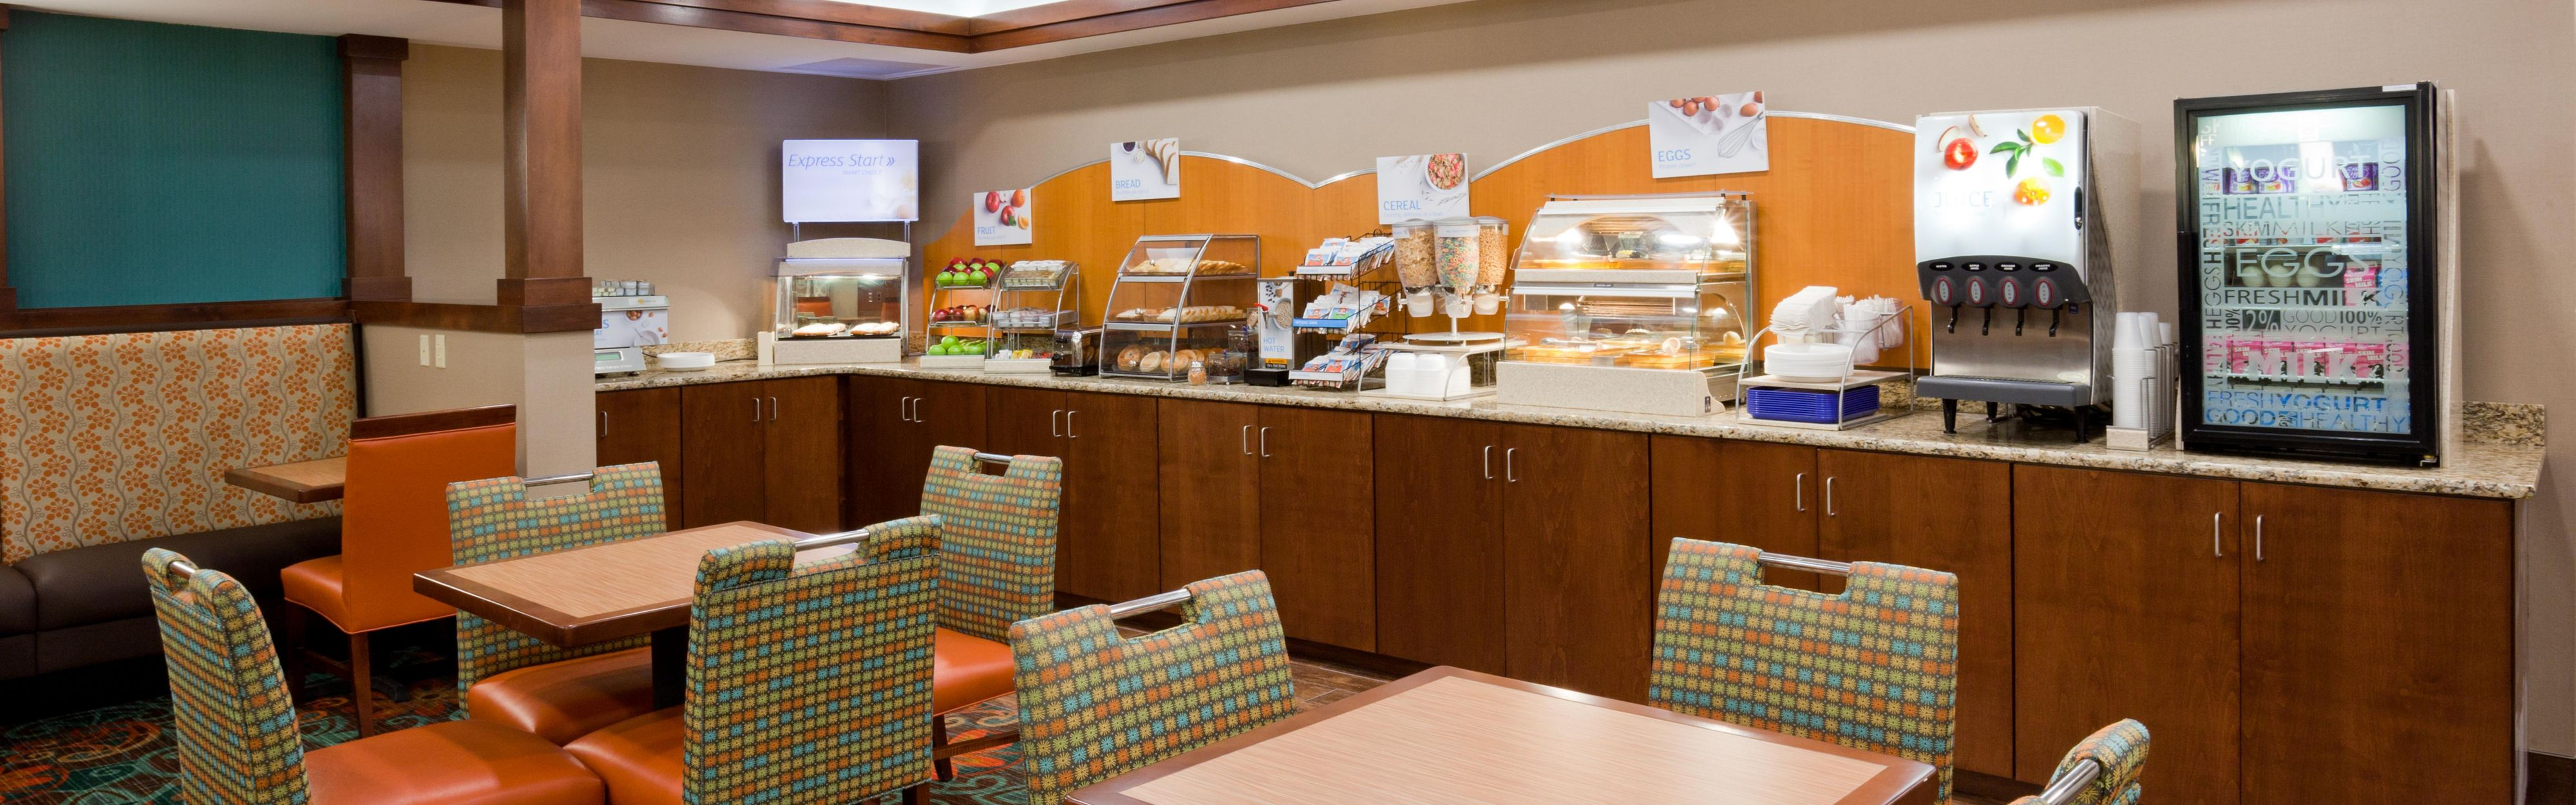 Holiday Inn Express & Suites St. Cloud image 3